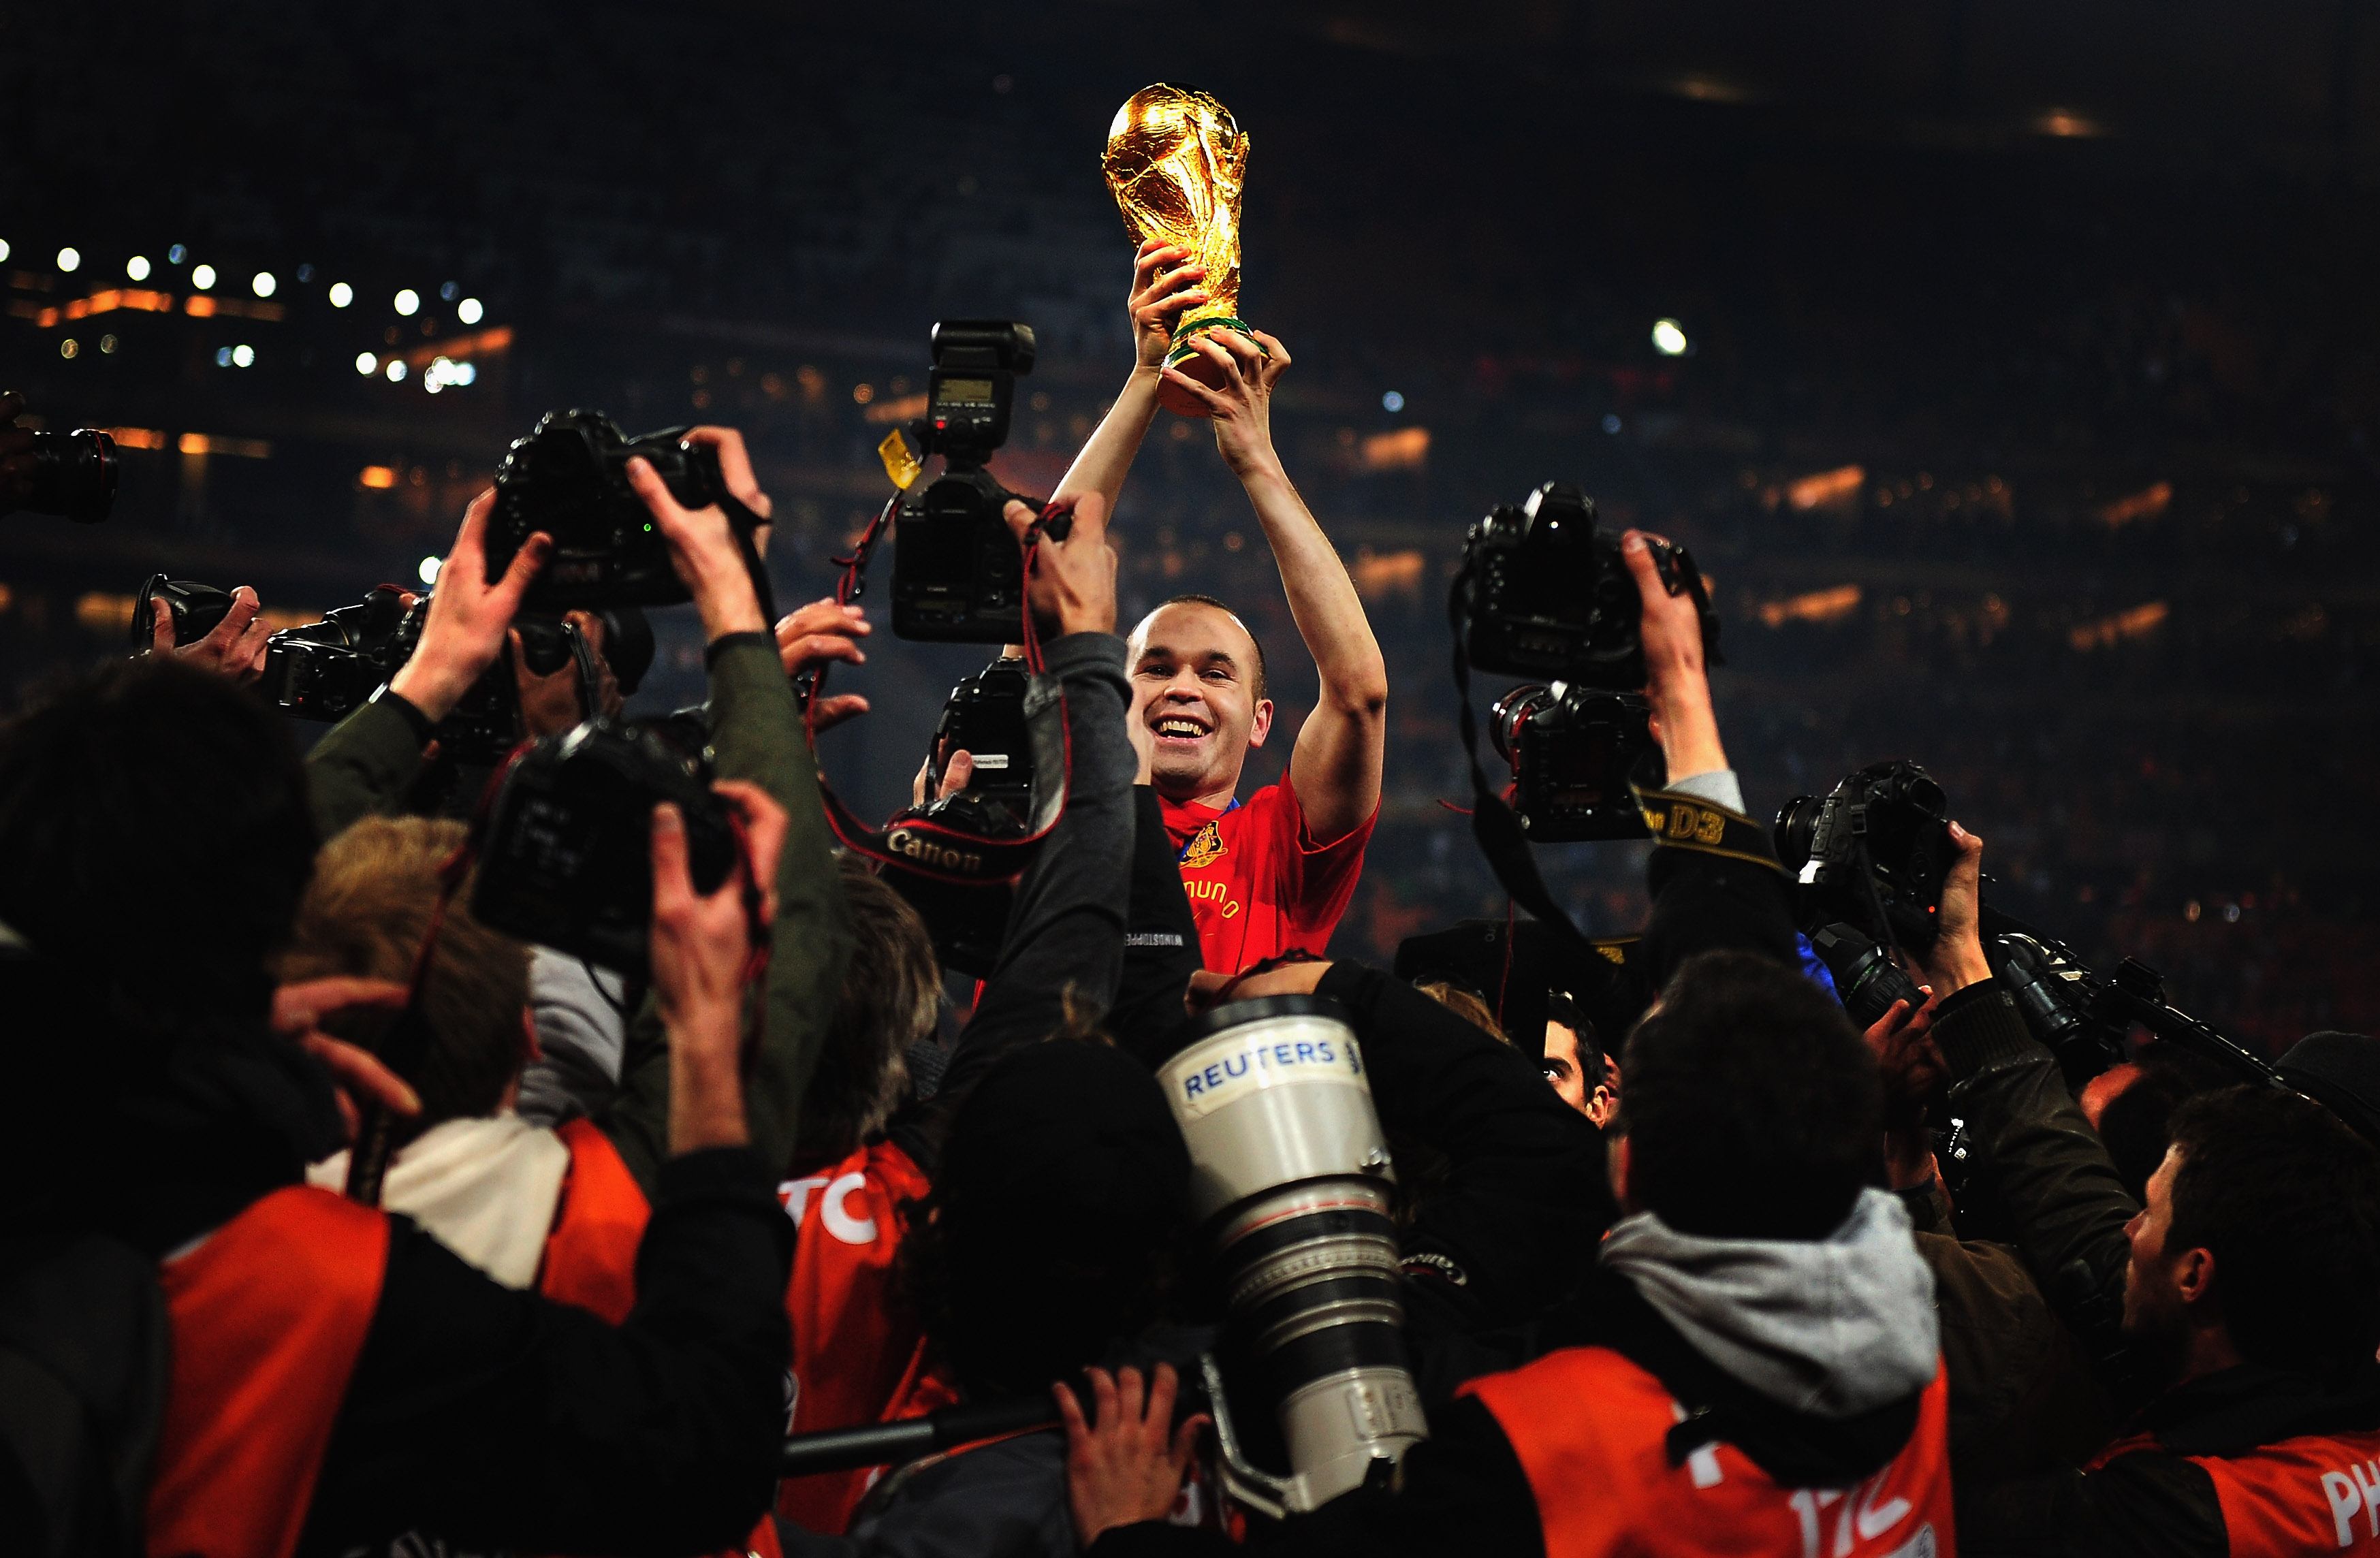 JOHANNESBURG, SOUTH AFRICA - JULY 11:  Andres Iniesta of Spain holds the World Cup trophy aloft after the 2010 FIFA World Cup South Africa Final match between Netherlands and Spain at Soccer City Stadium on July 11, 2010 in Johannesburg, South Africa.  (P